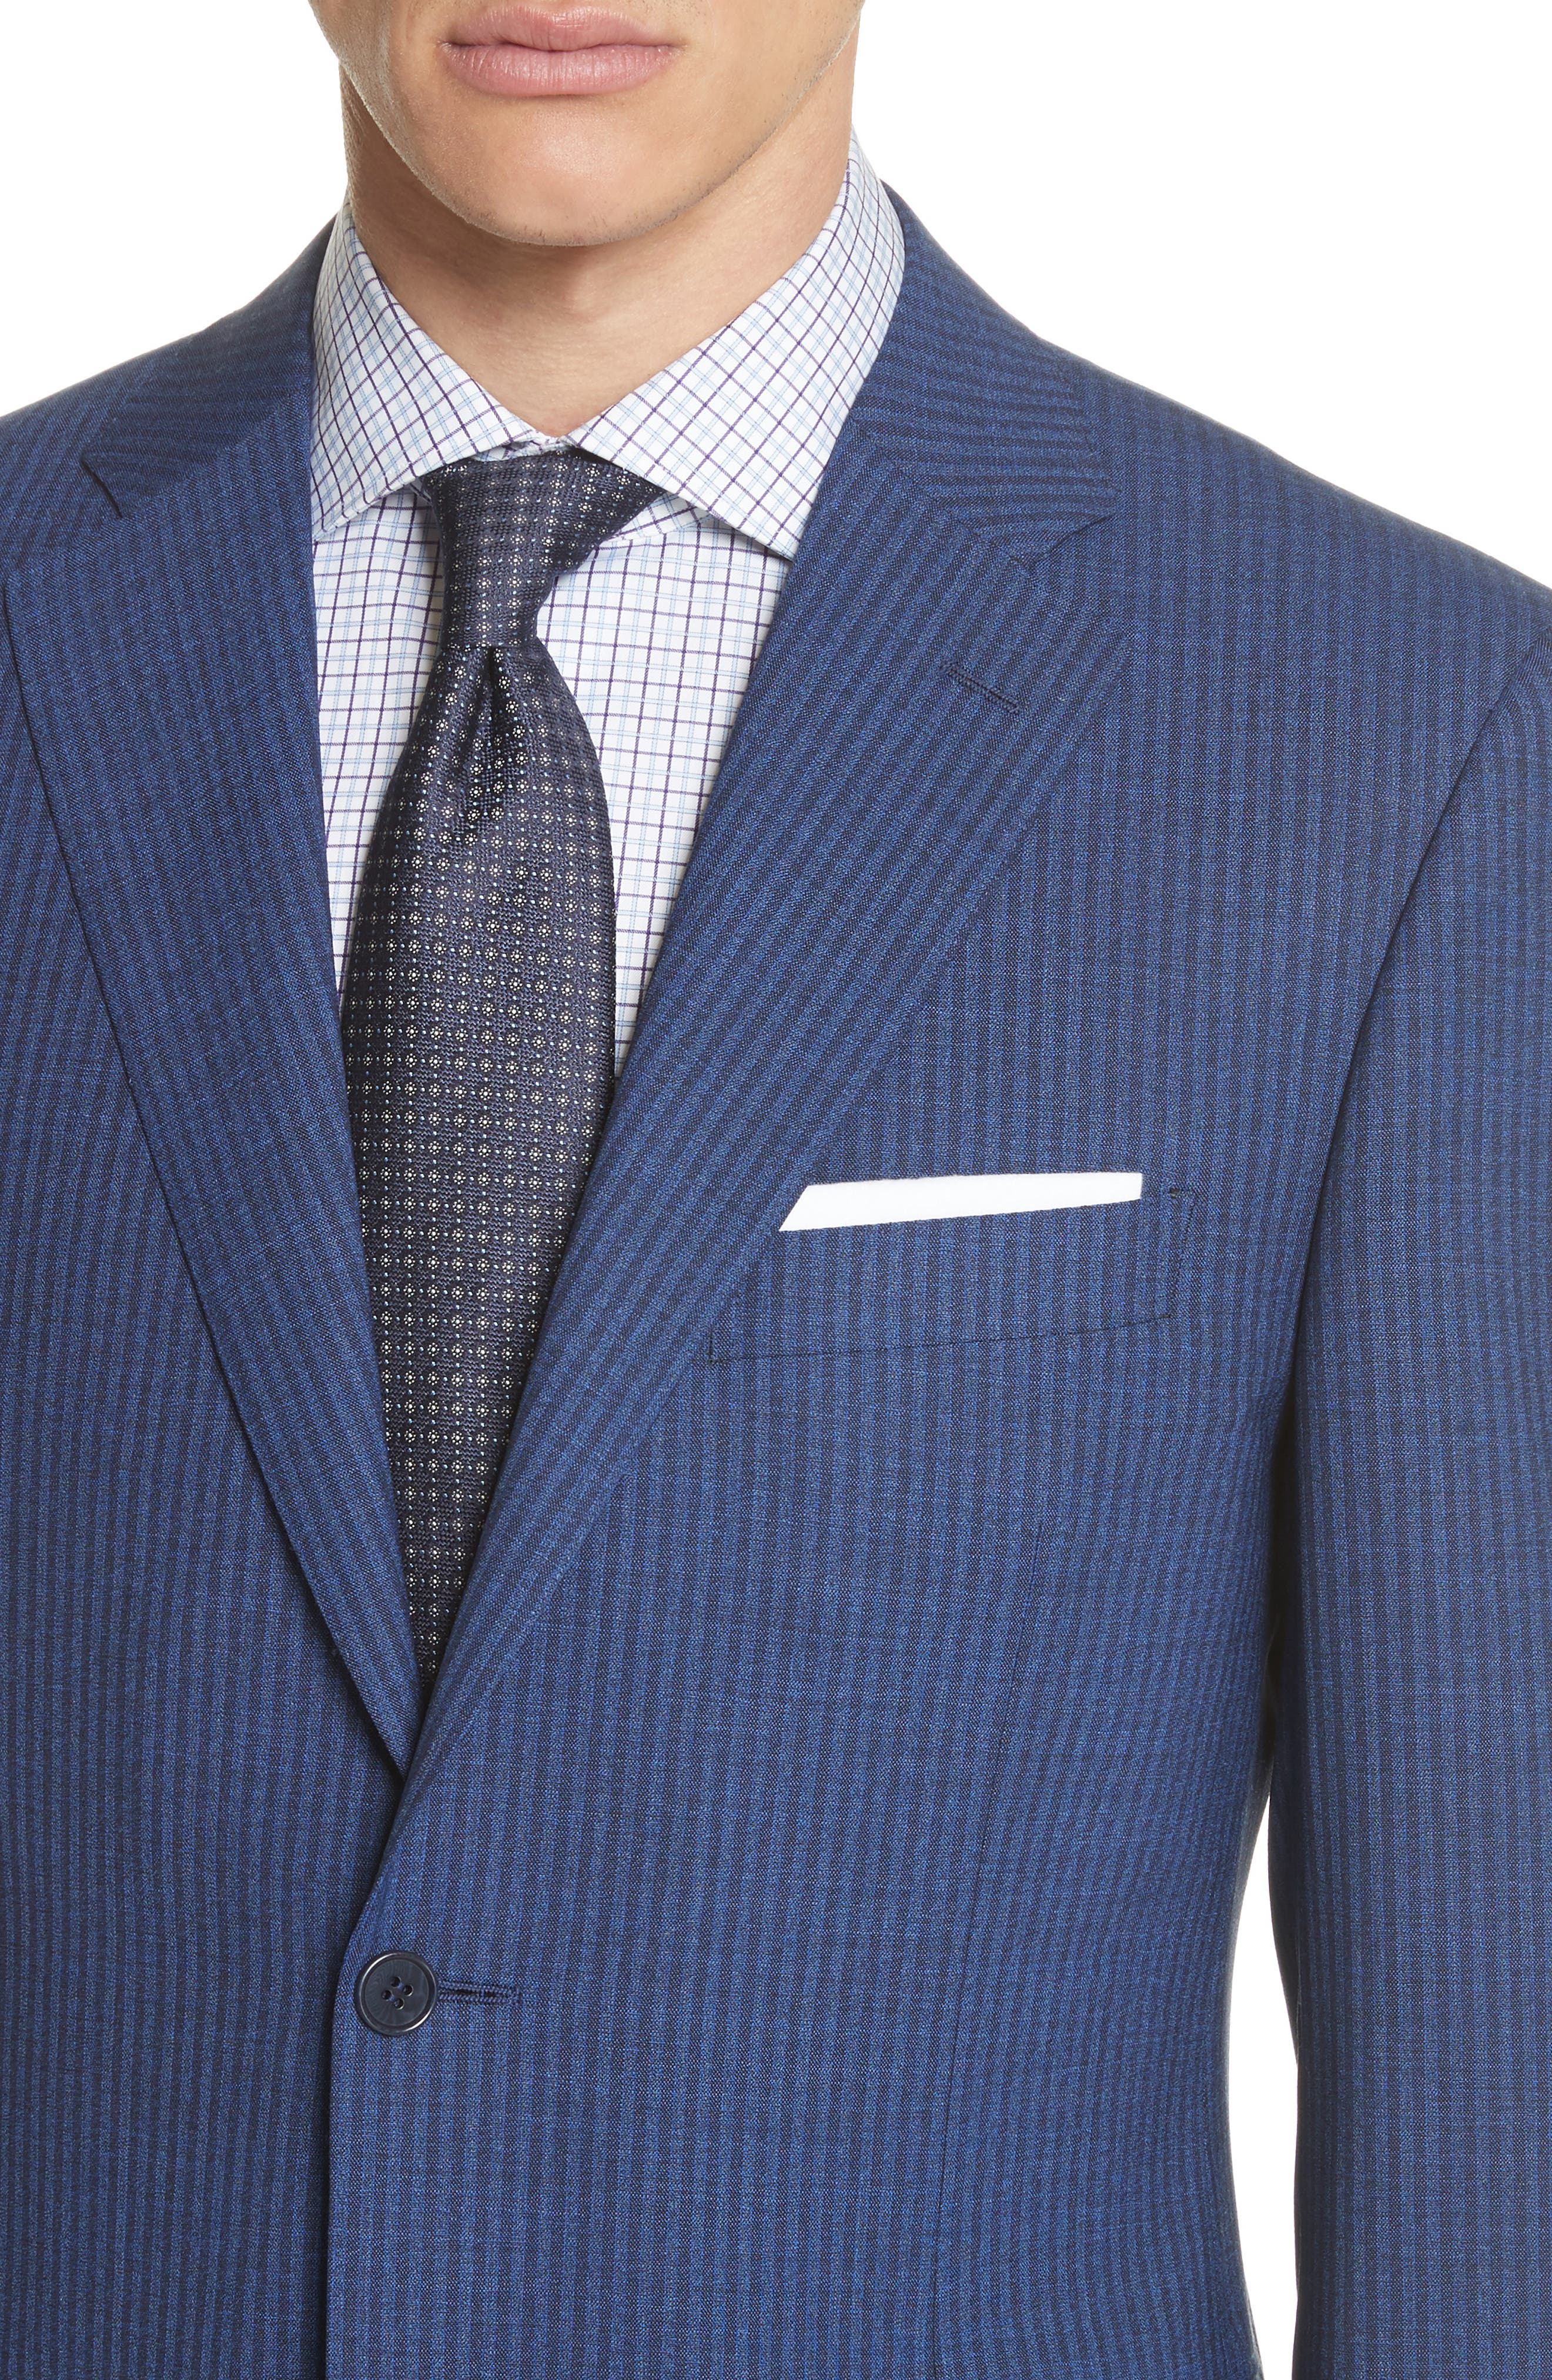 Classic Fit Shadow Stripe Wool Suit,                             Alternate thumbnail 4, color,                             Navy